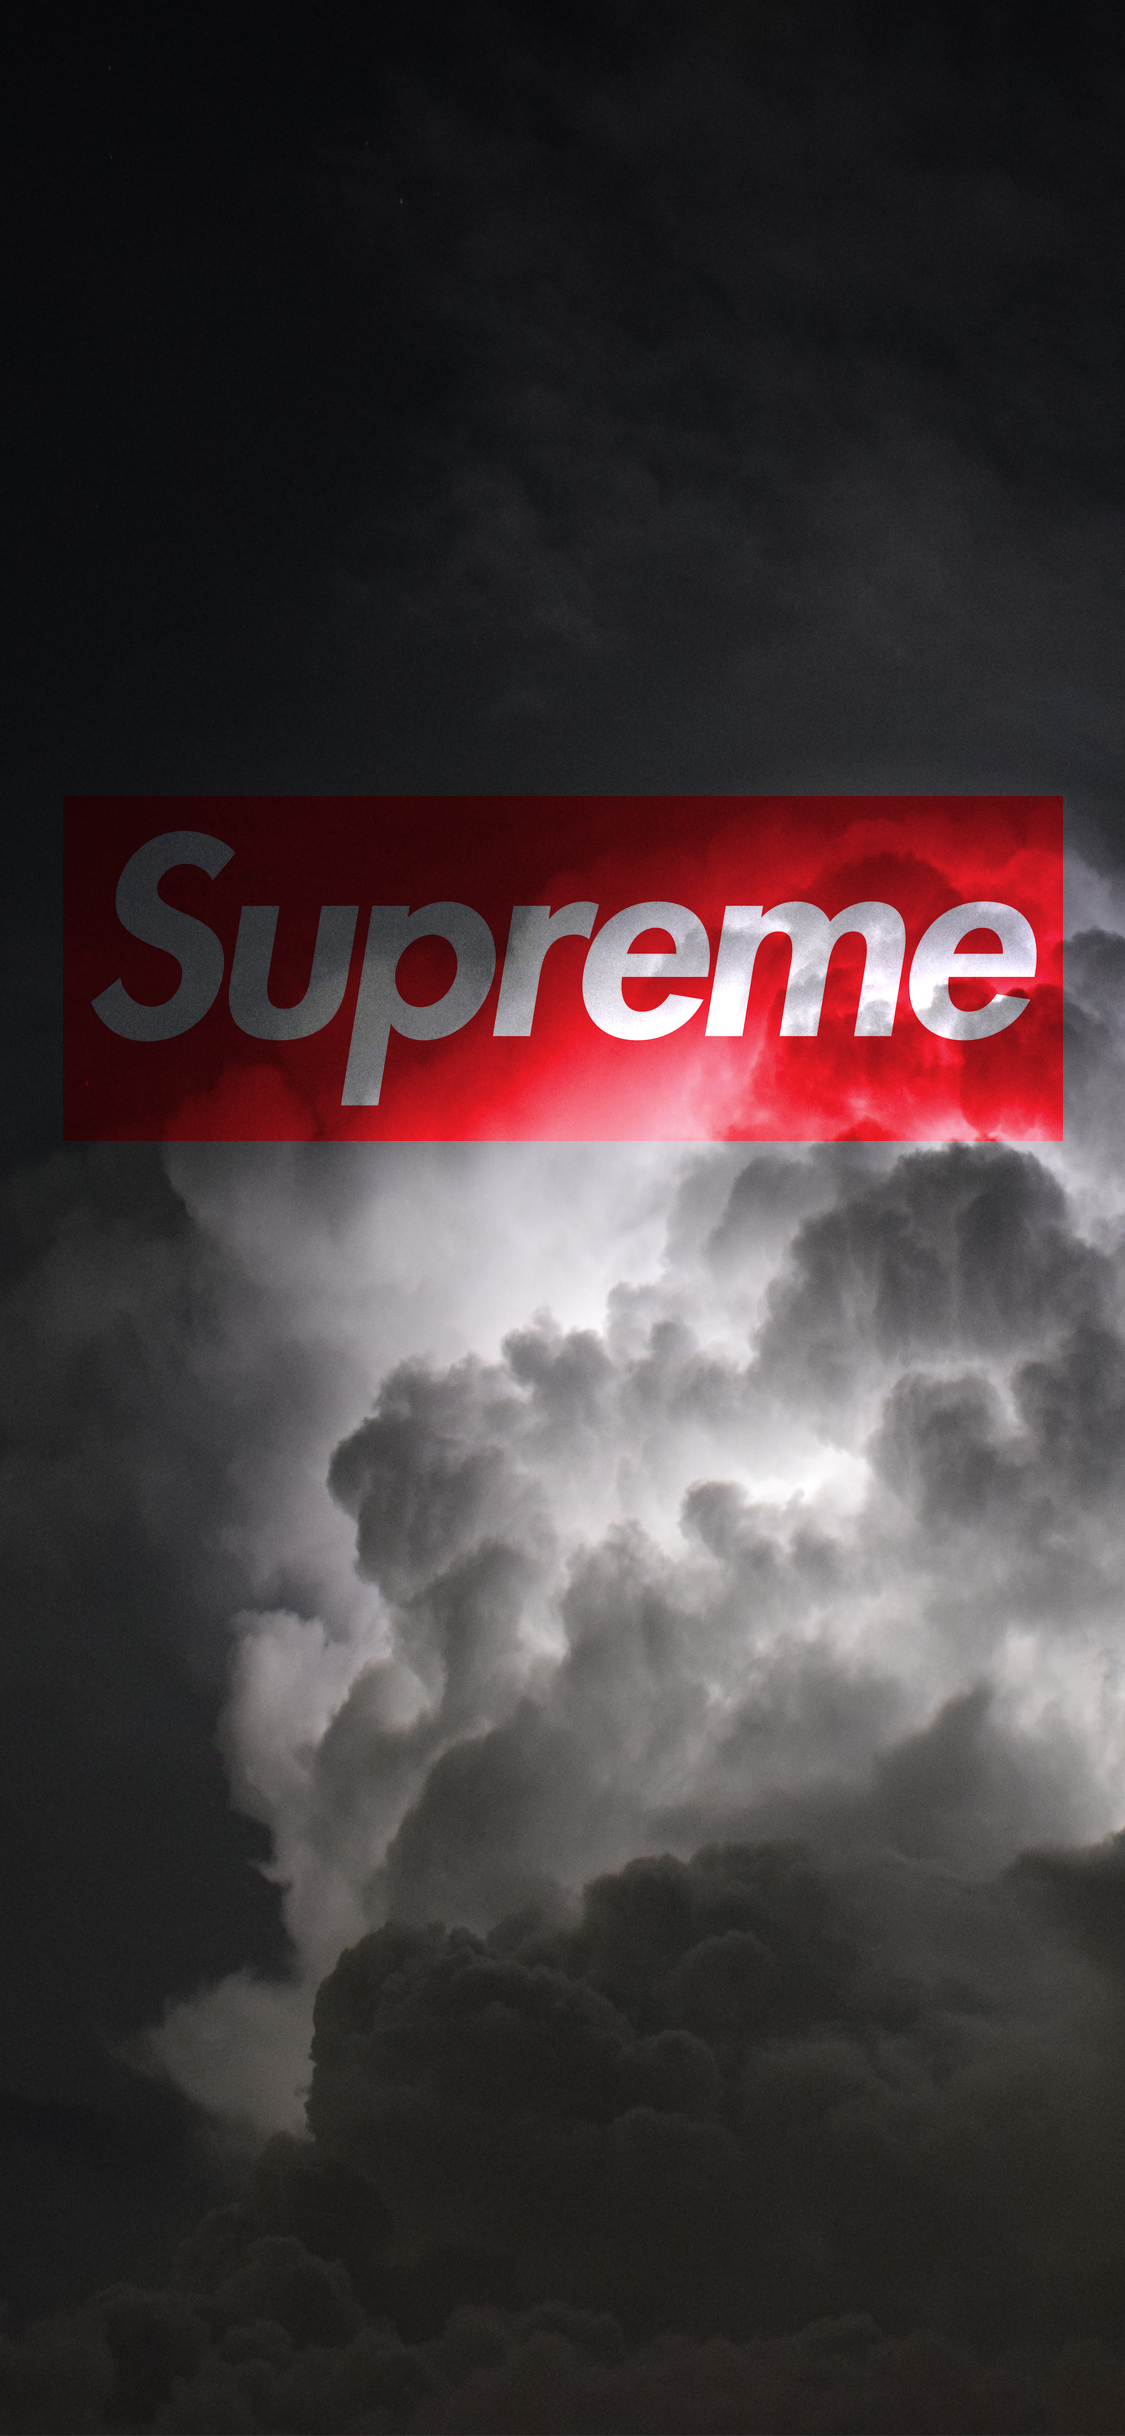 Supreme Cool Supreme Wallpaper Supreme Iphone Wallpaper Supreme Wallpaper Hd